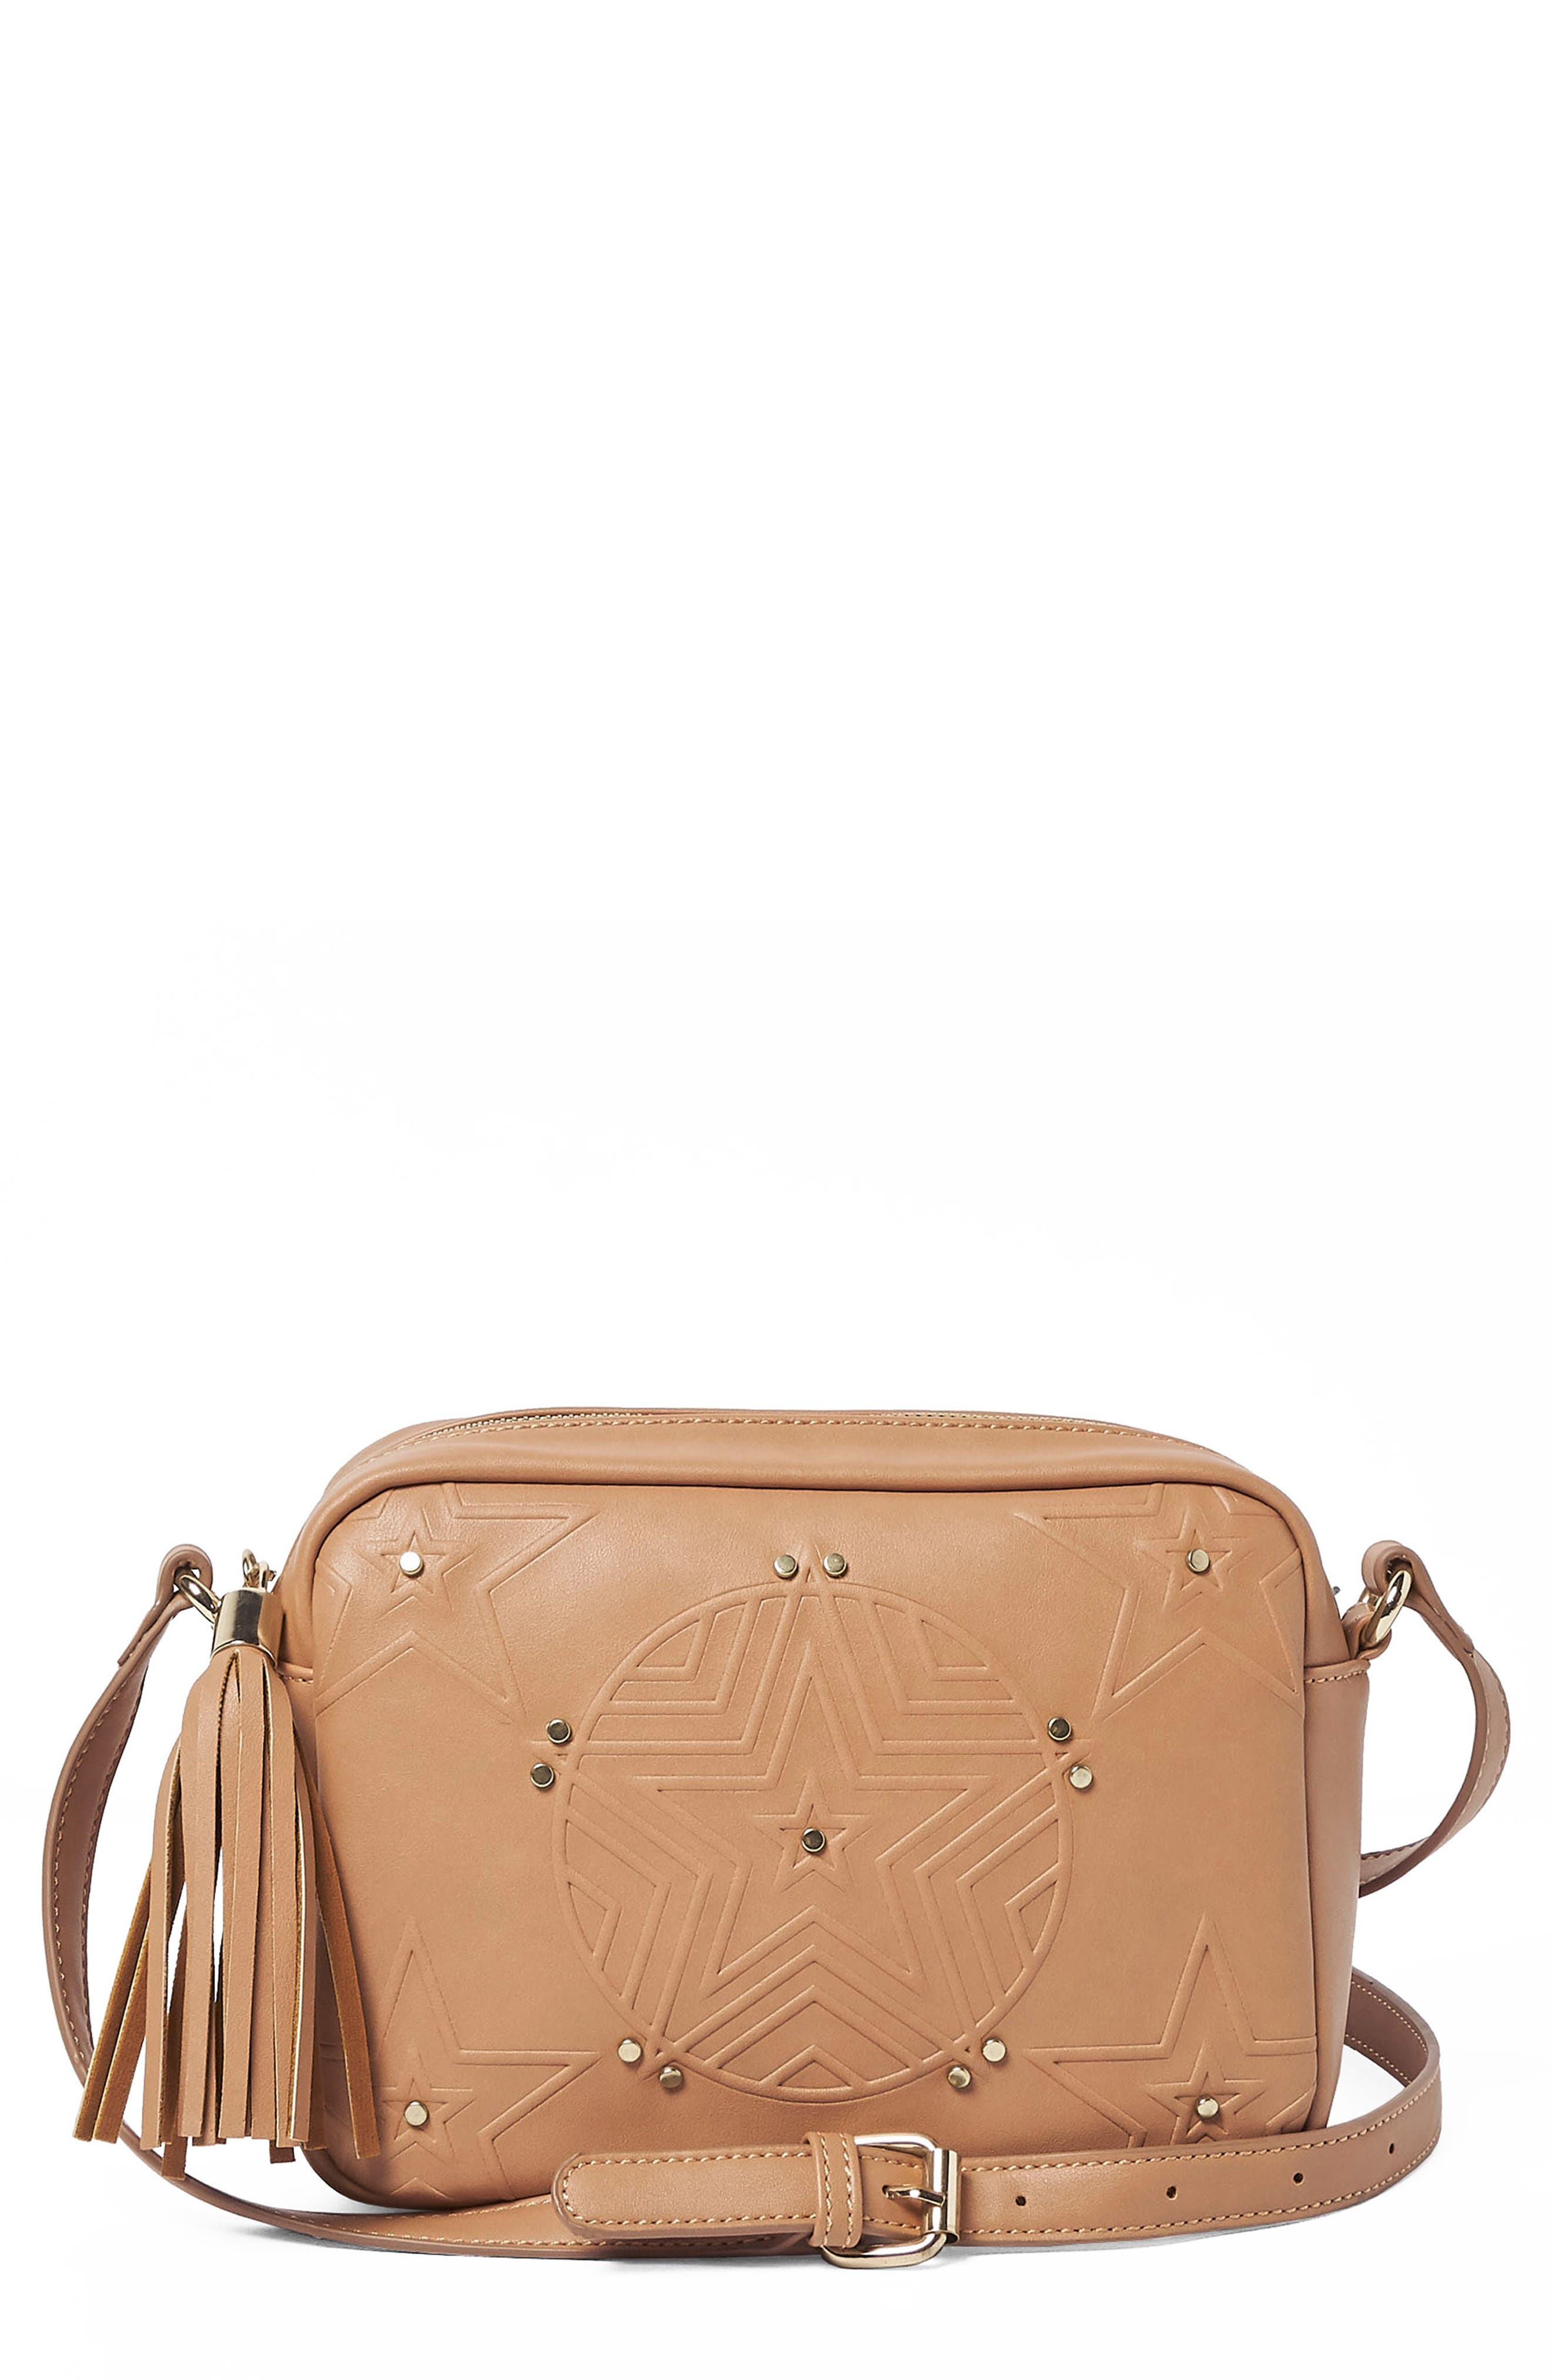 Urban Originals STARGAZER VEGAN LEATHER CROSSBODY BAG - BEIGE